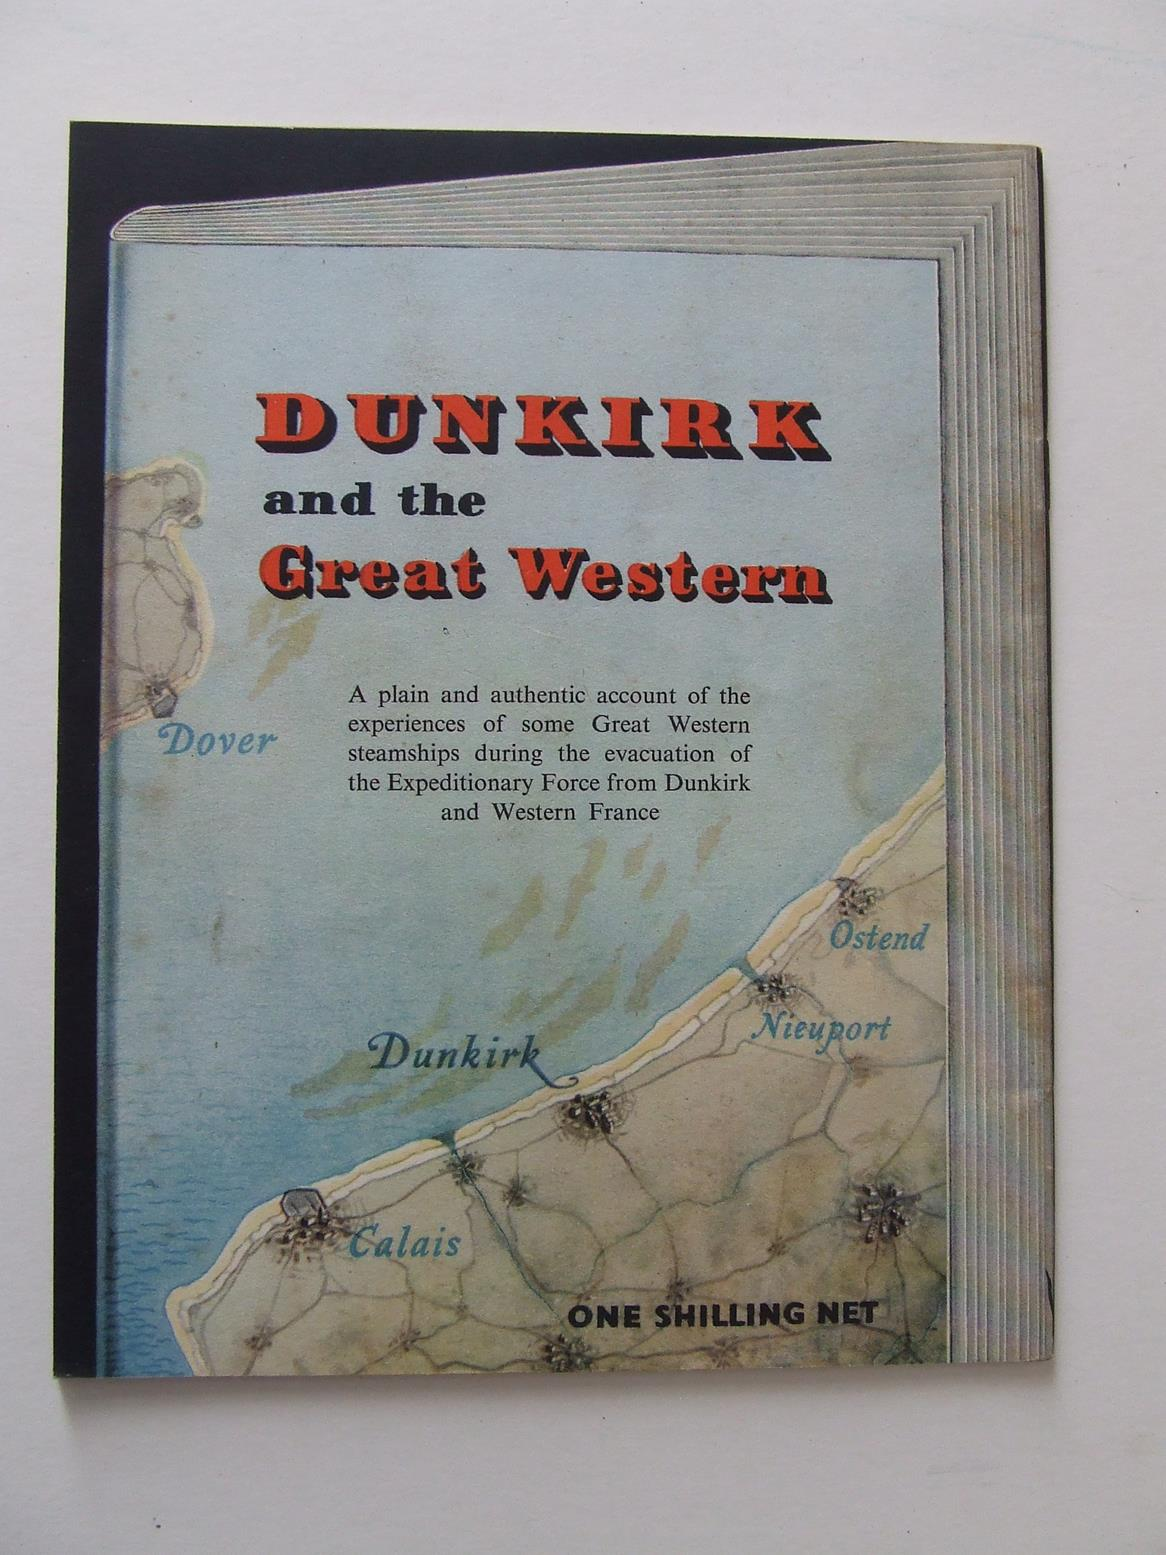 Dunkirk and the Great Western